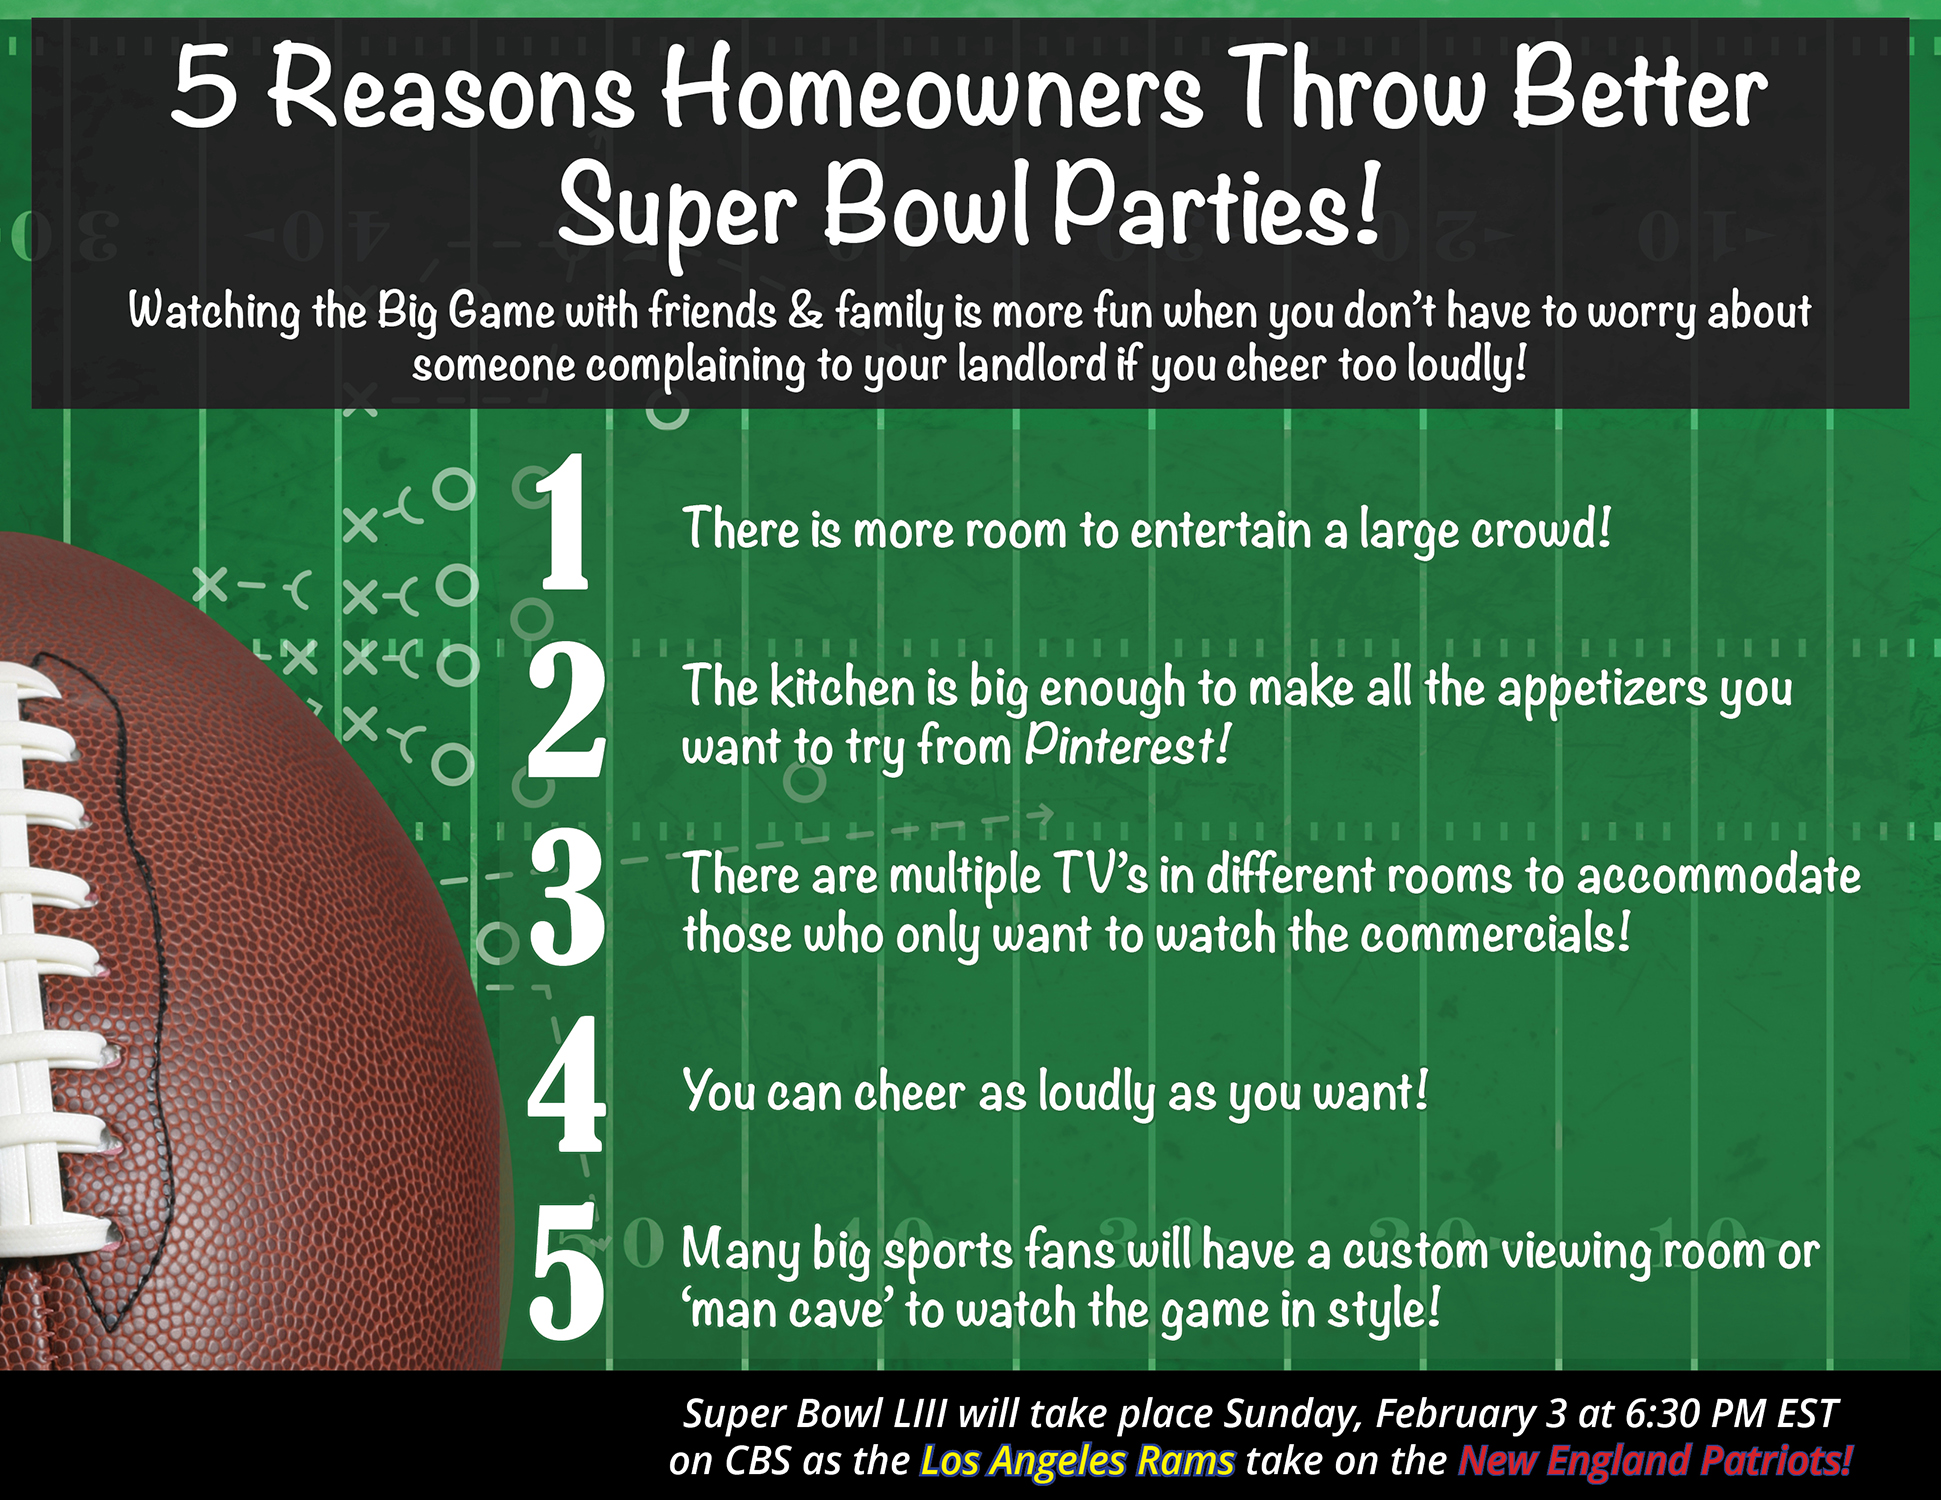 5 Reasons Homeowners Throw the Best Super Bowl Parties! [INFOGRAPHIC] | Bridge Builders